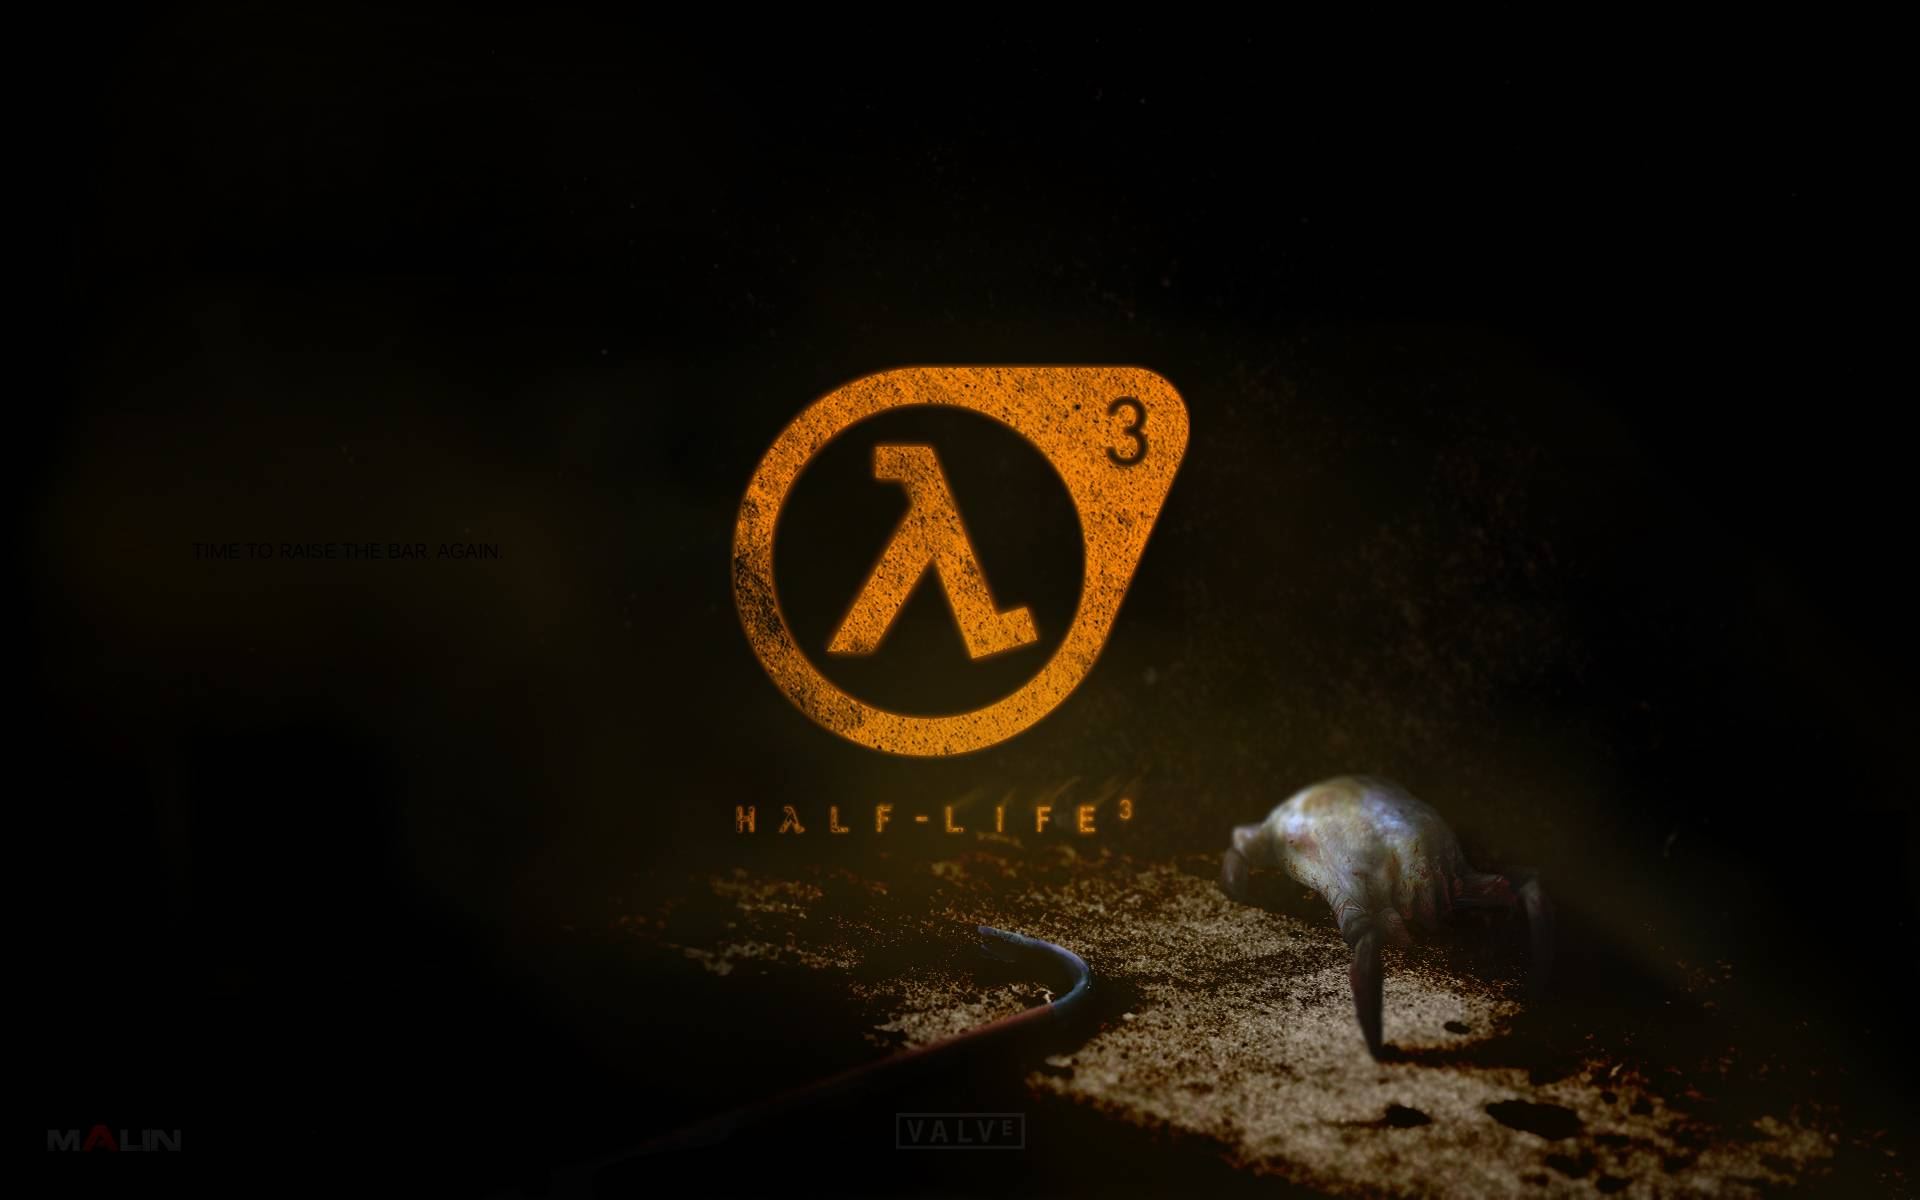 file_6499_HALF_LIFE_3_WALLPAPERS_IN_HD